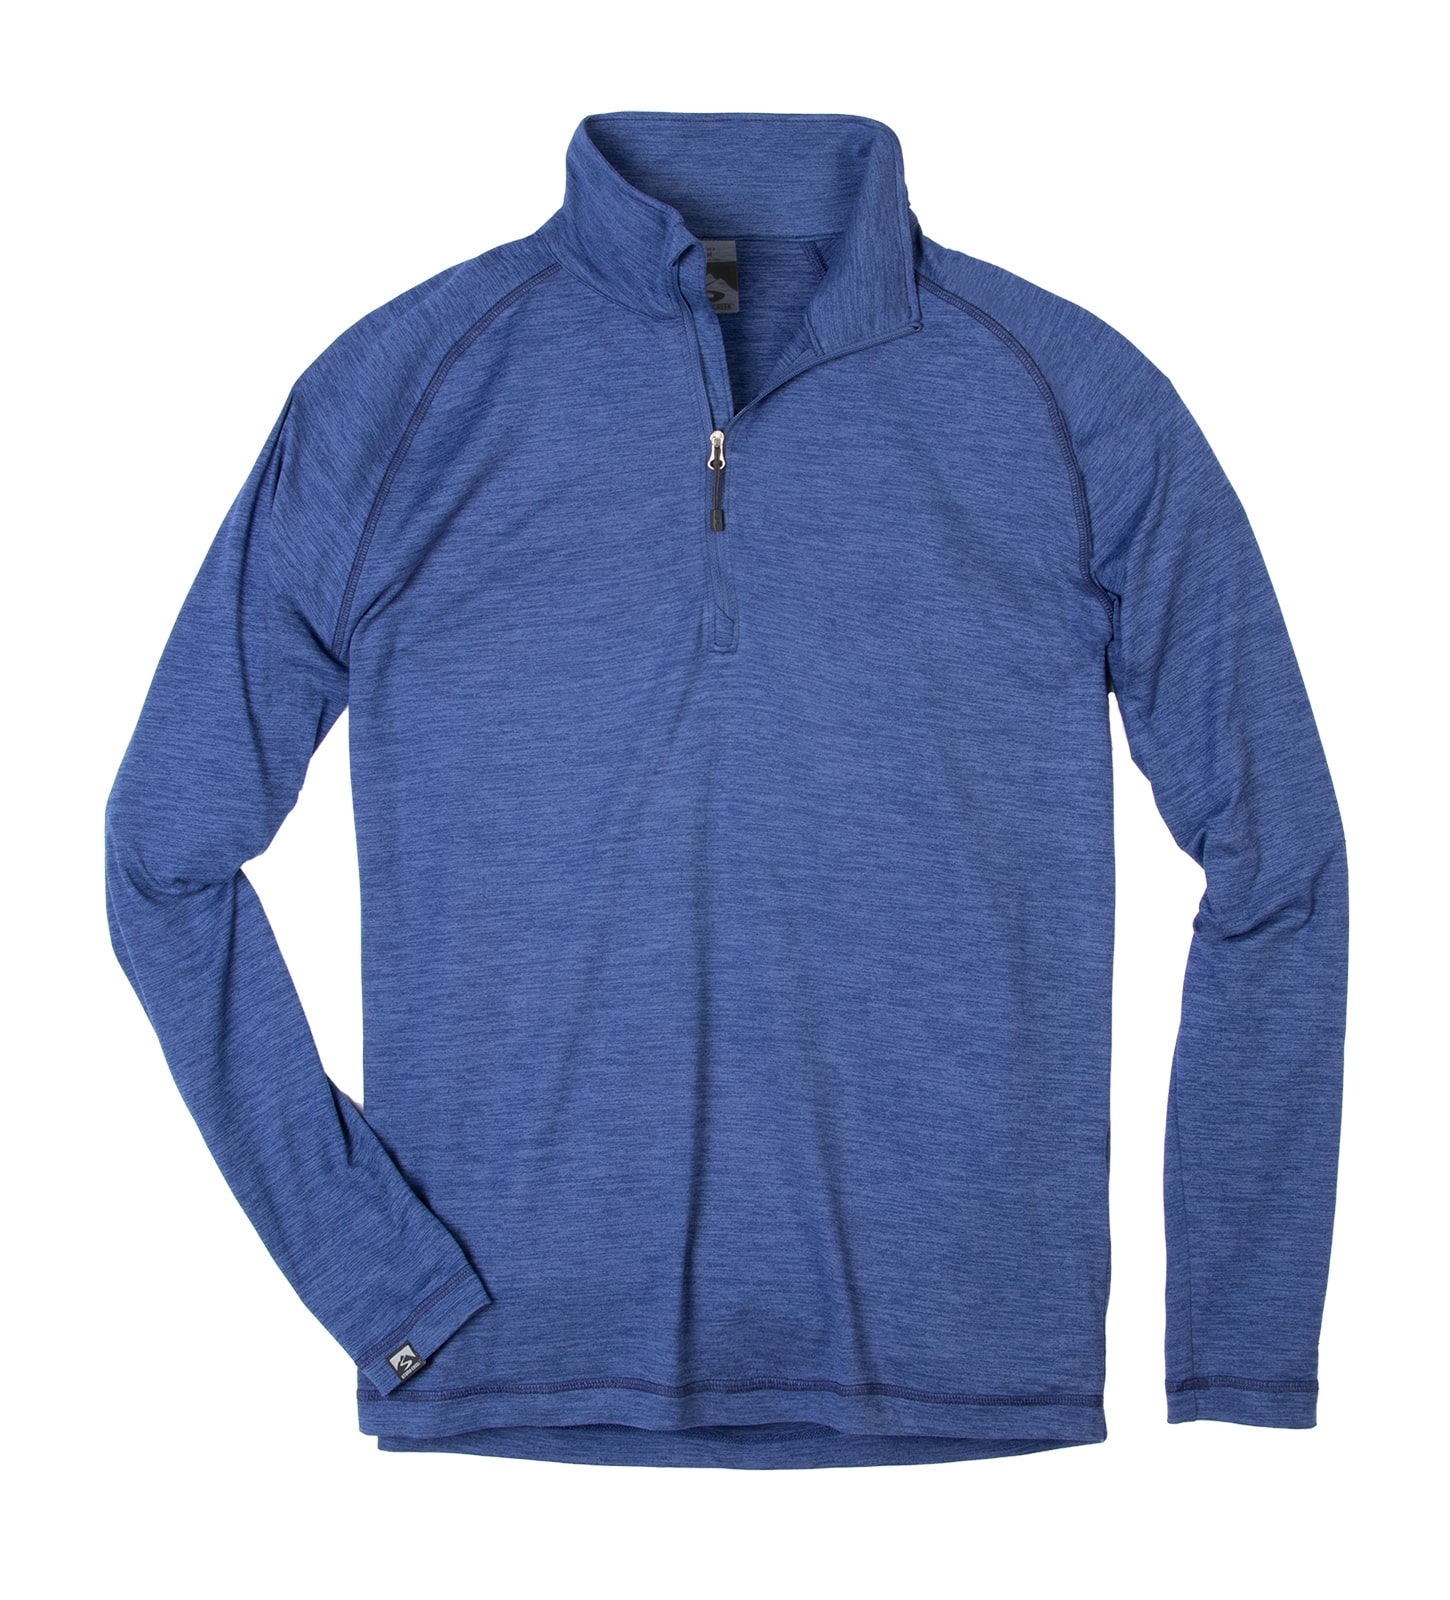 Storm Creek 2340 - Men's Moss Jersey 1/4 Zip